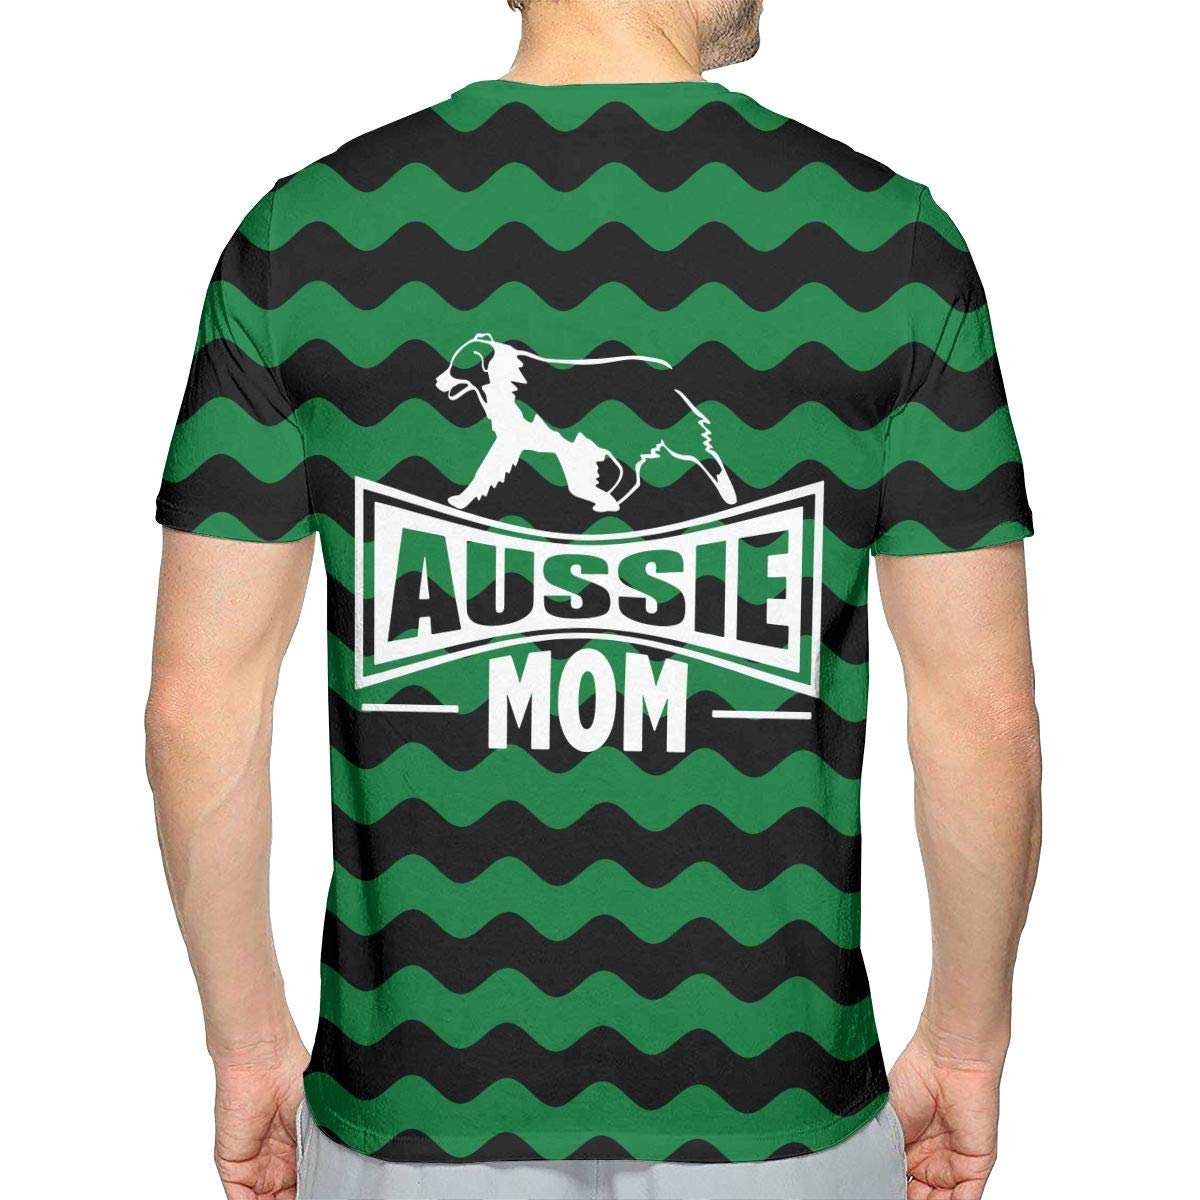 Aussie Mom Australian Shepherd Dog Mens Sport Short Sleeve T-Shirt